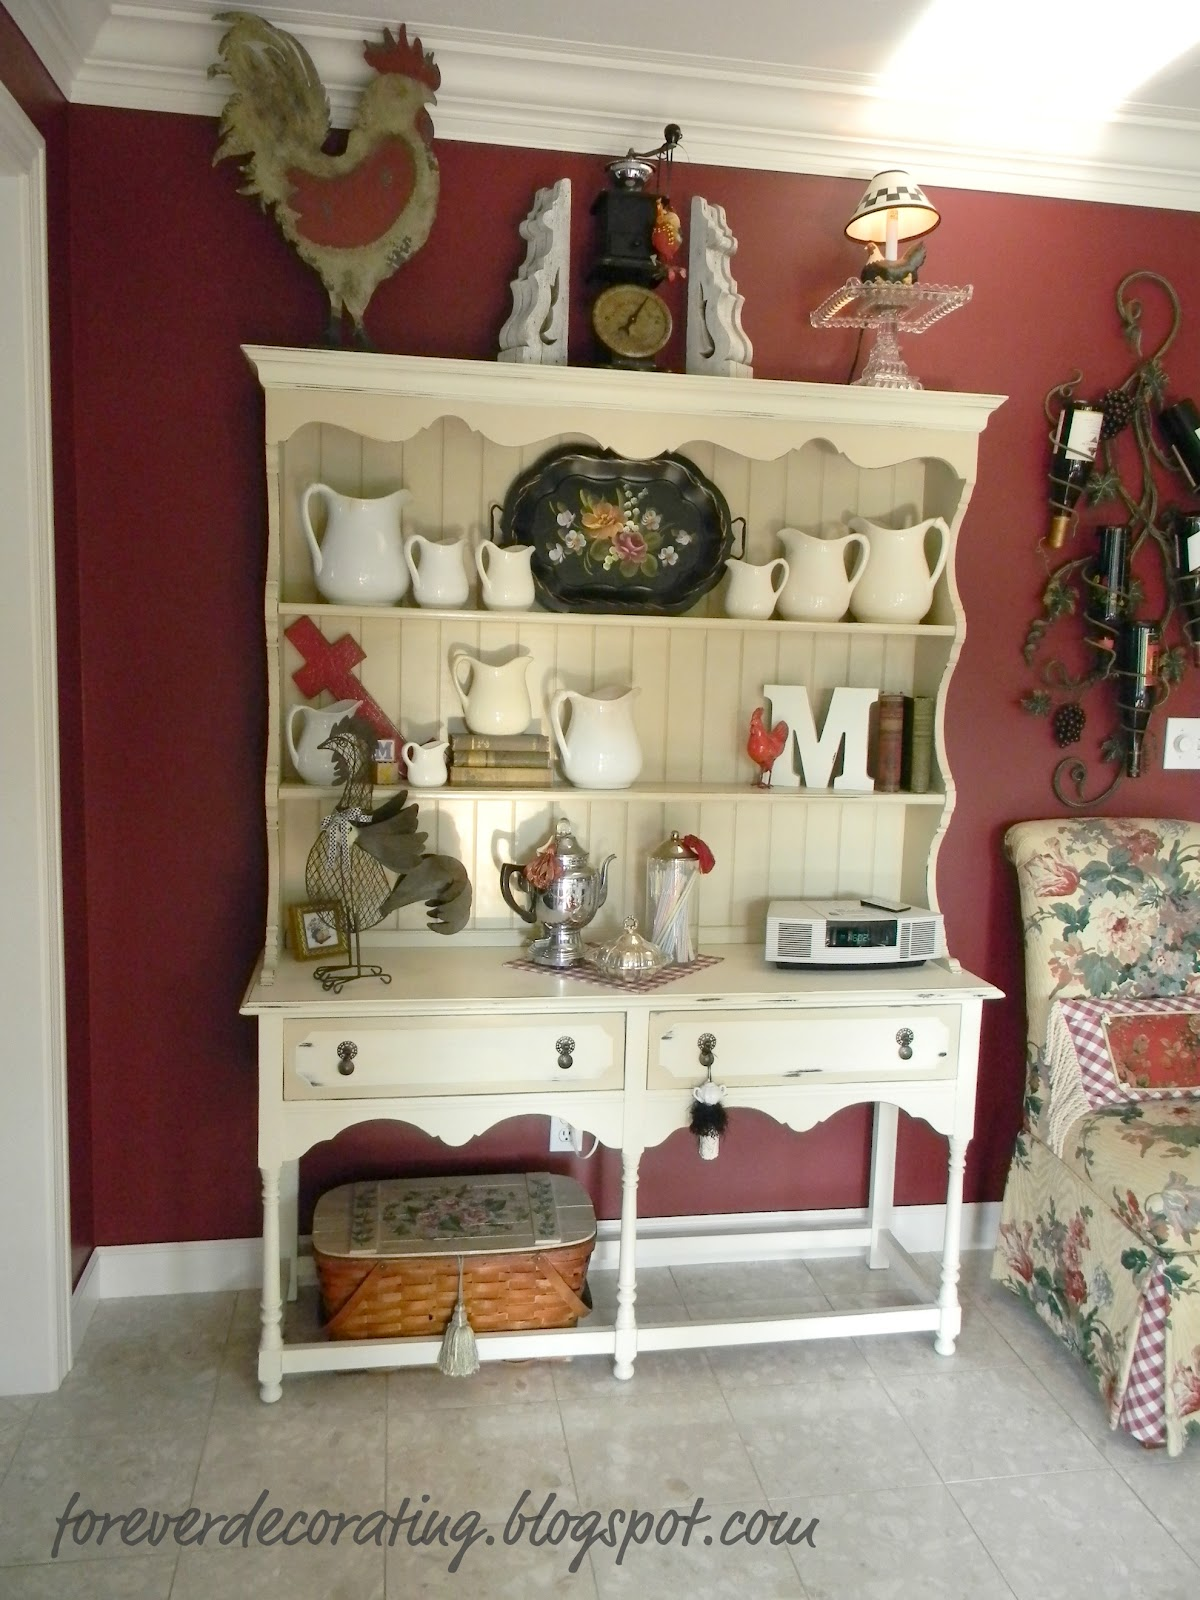 Forever decorating hutch decor 101 107 for Hutch decor